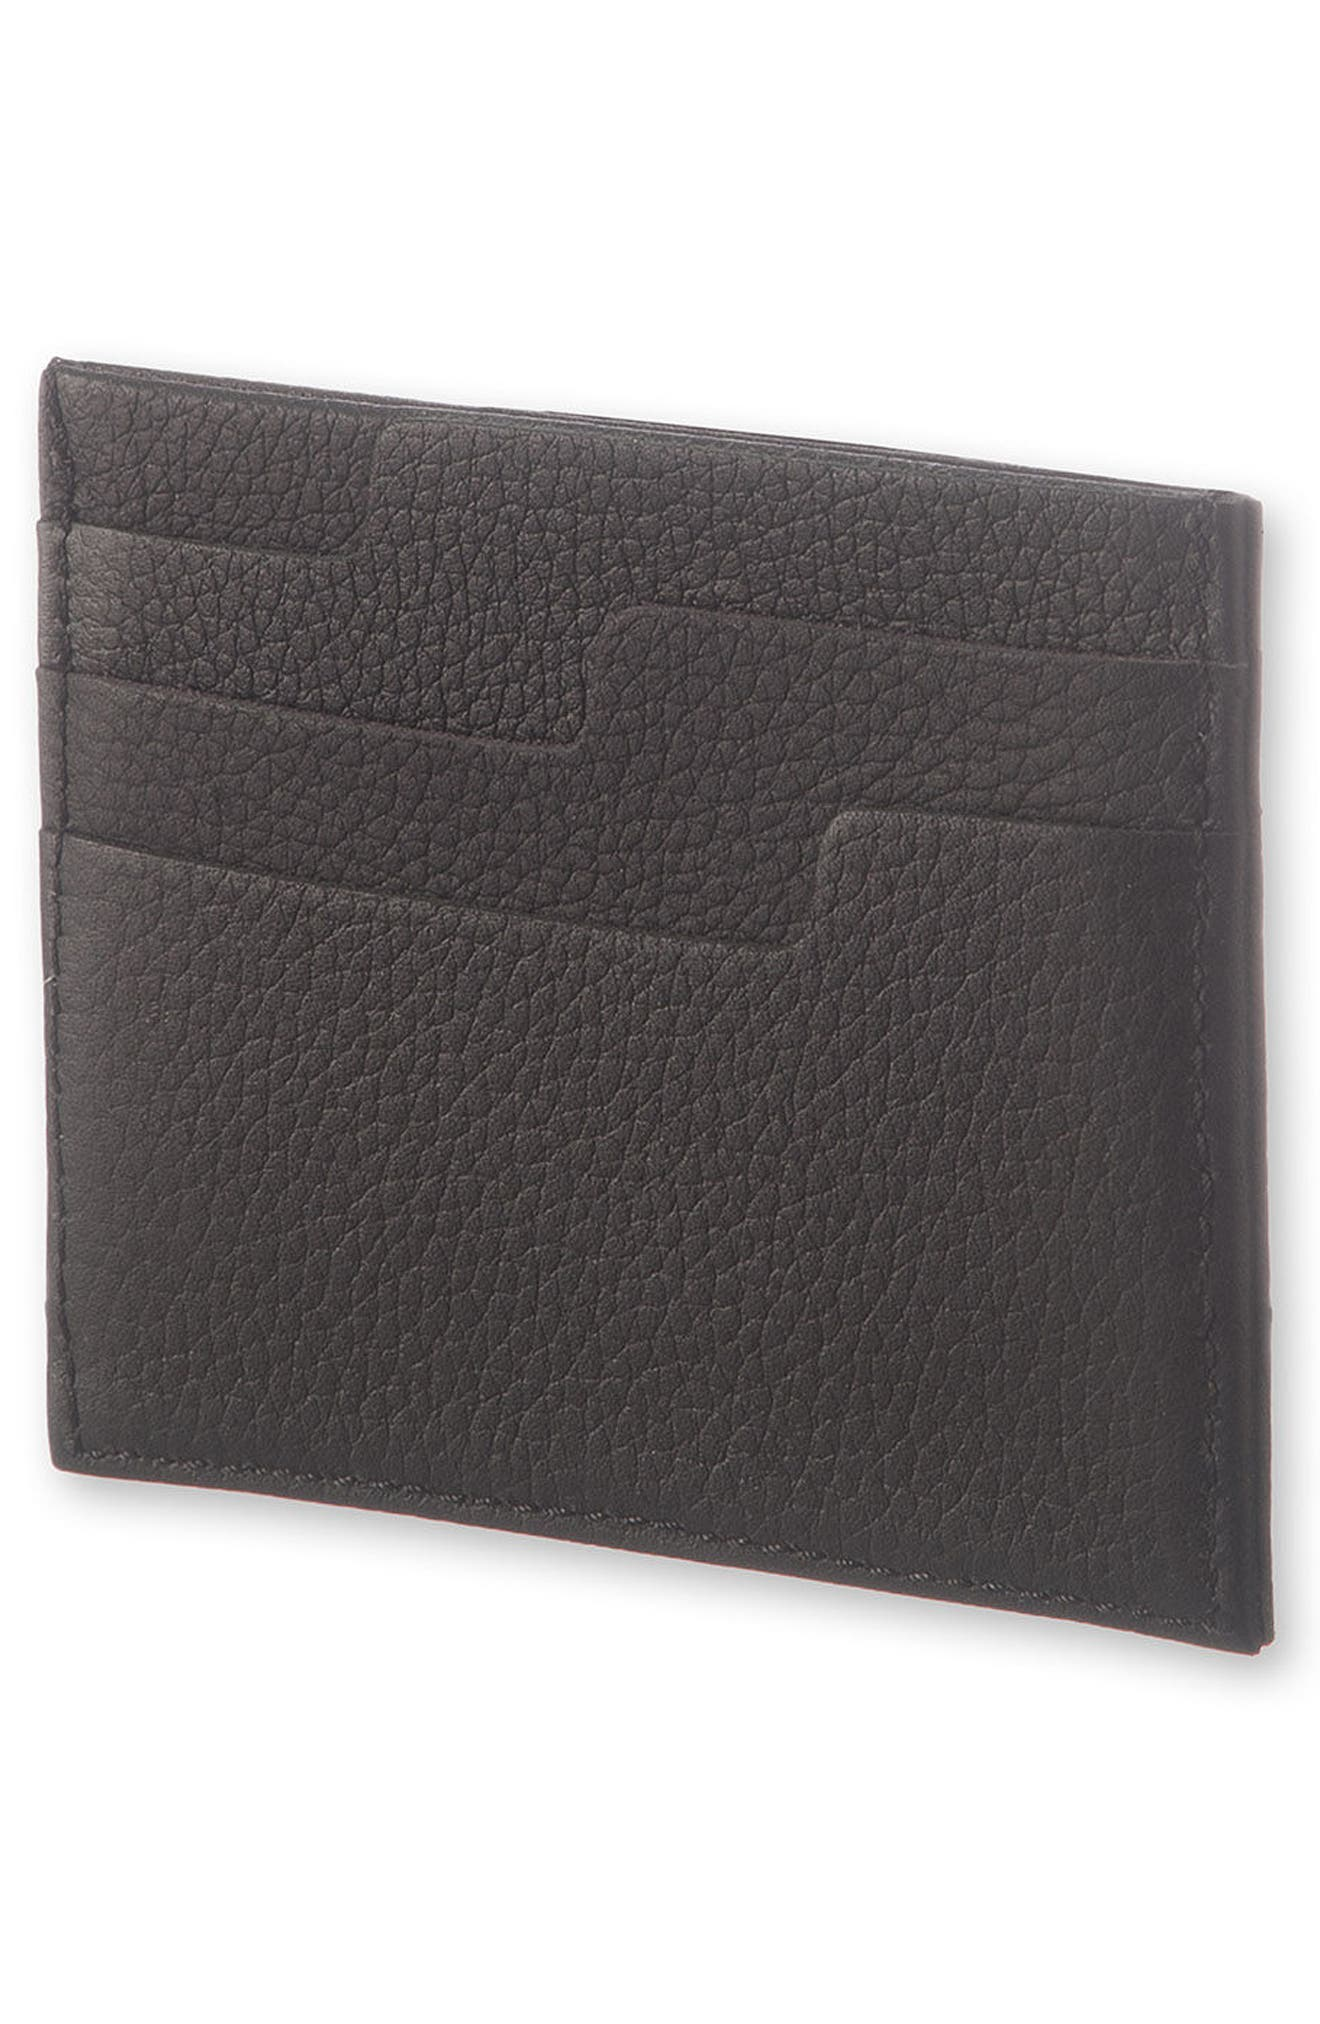 Moleskin Lineage Leather Card Case,                             Alternate thumbnail 3, color,                             001